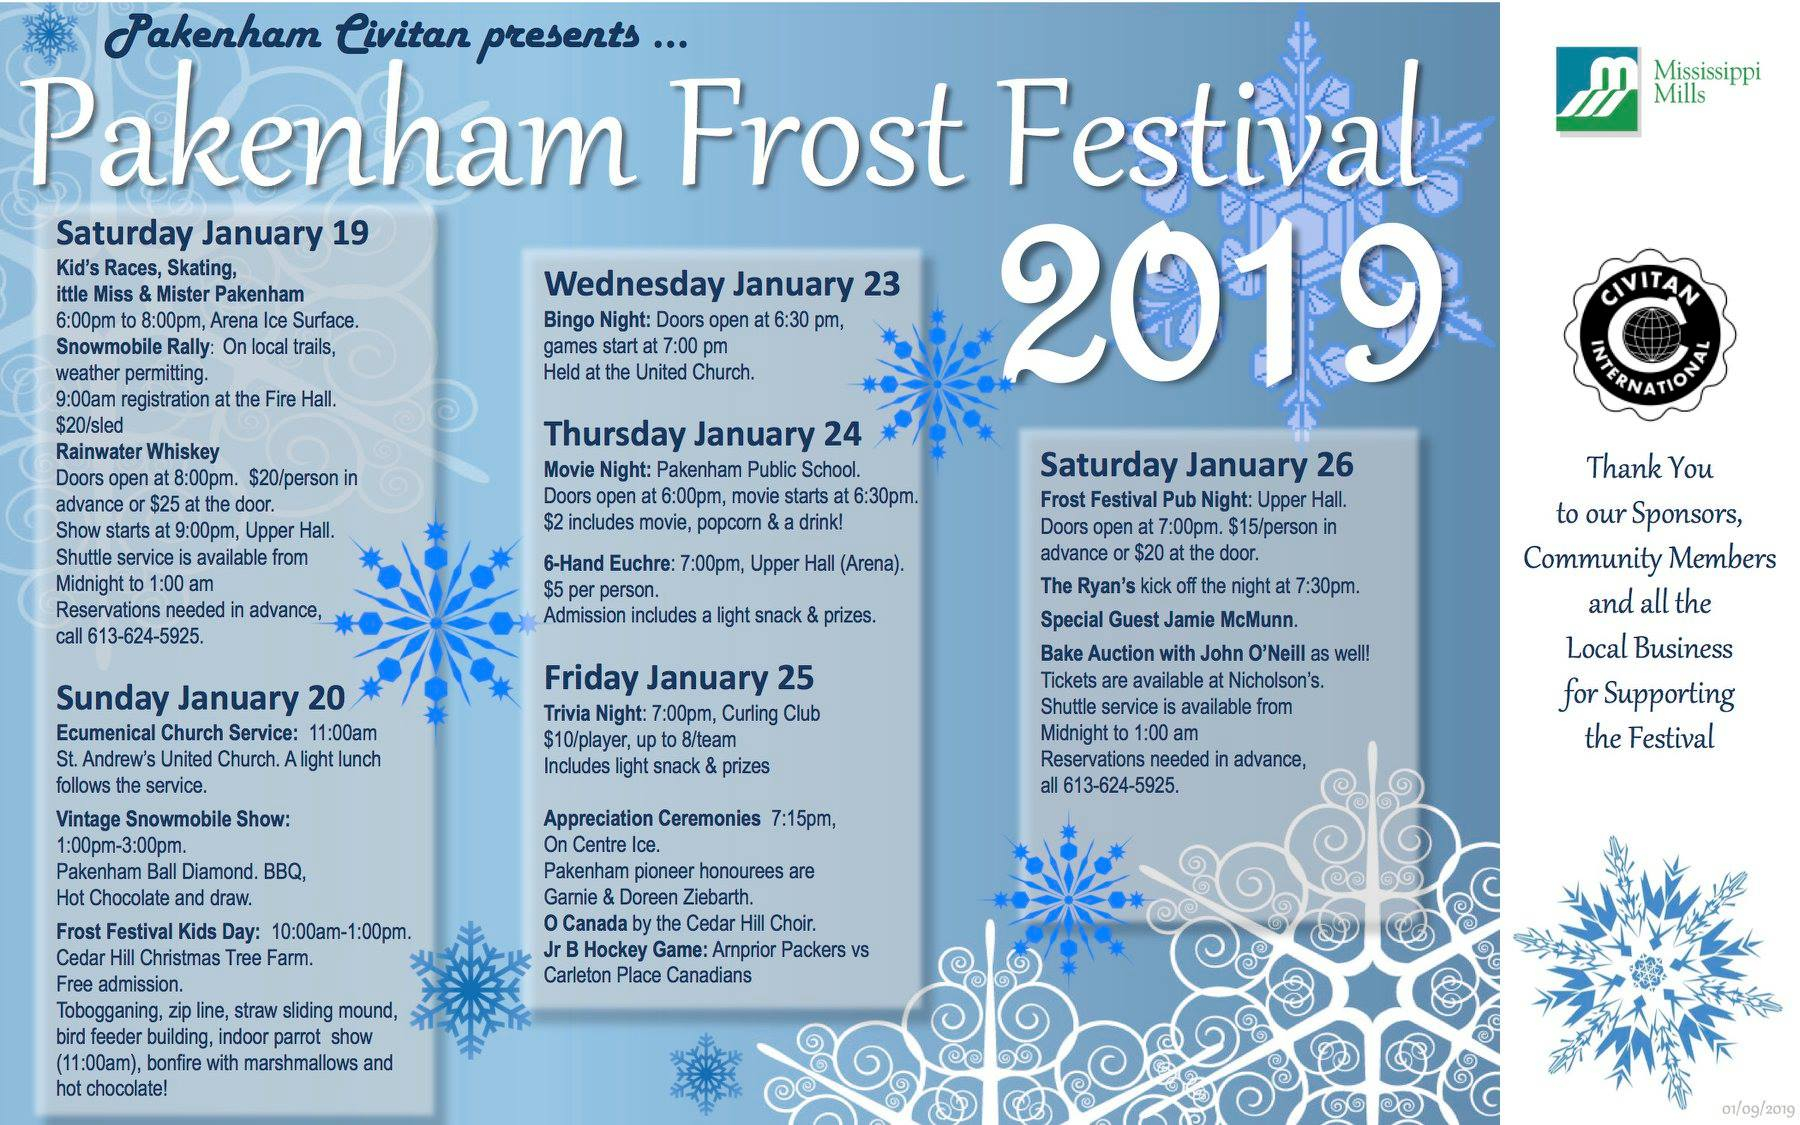 Pakenham Frost Festival - Lanark County Tourism Throughout College Of Lake County Calendar 2021